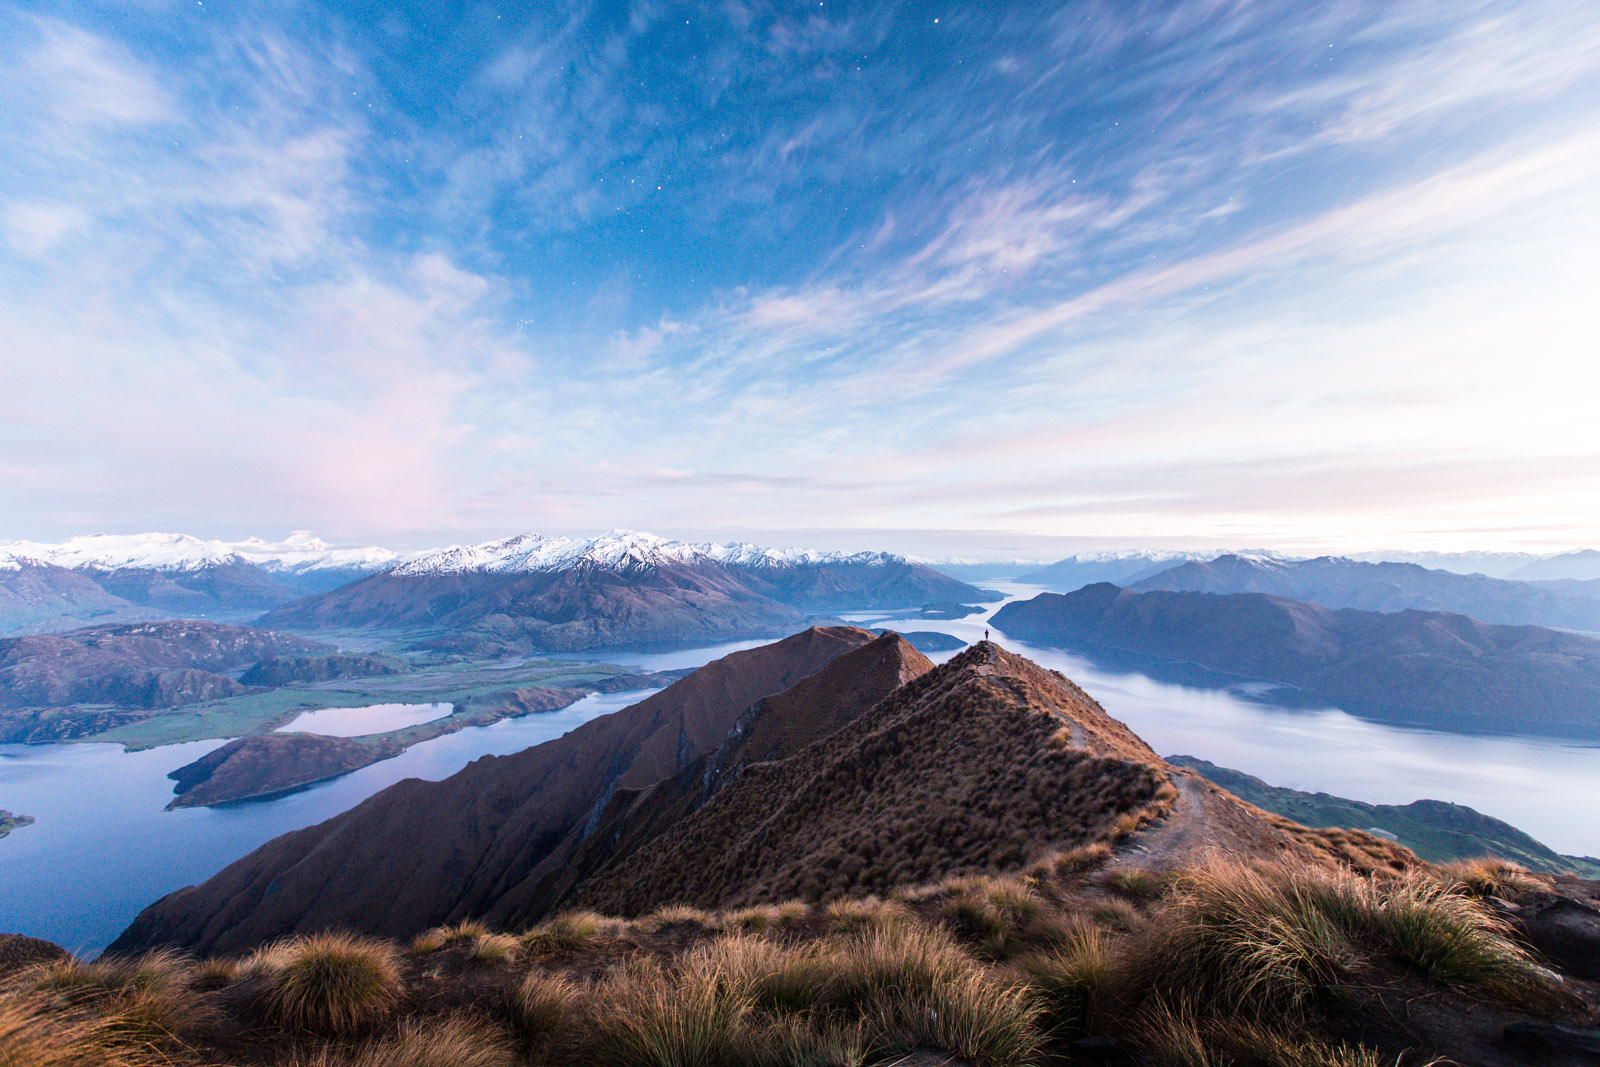 Roys-peak-new-zealand-predawn-lon- exposure